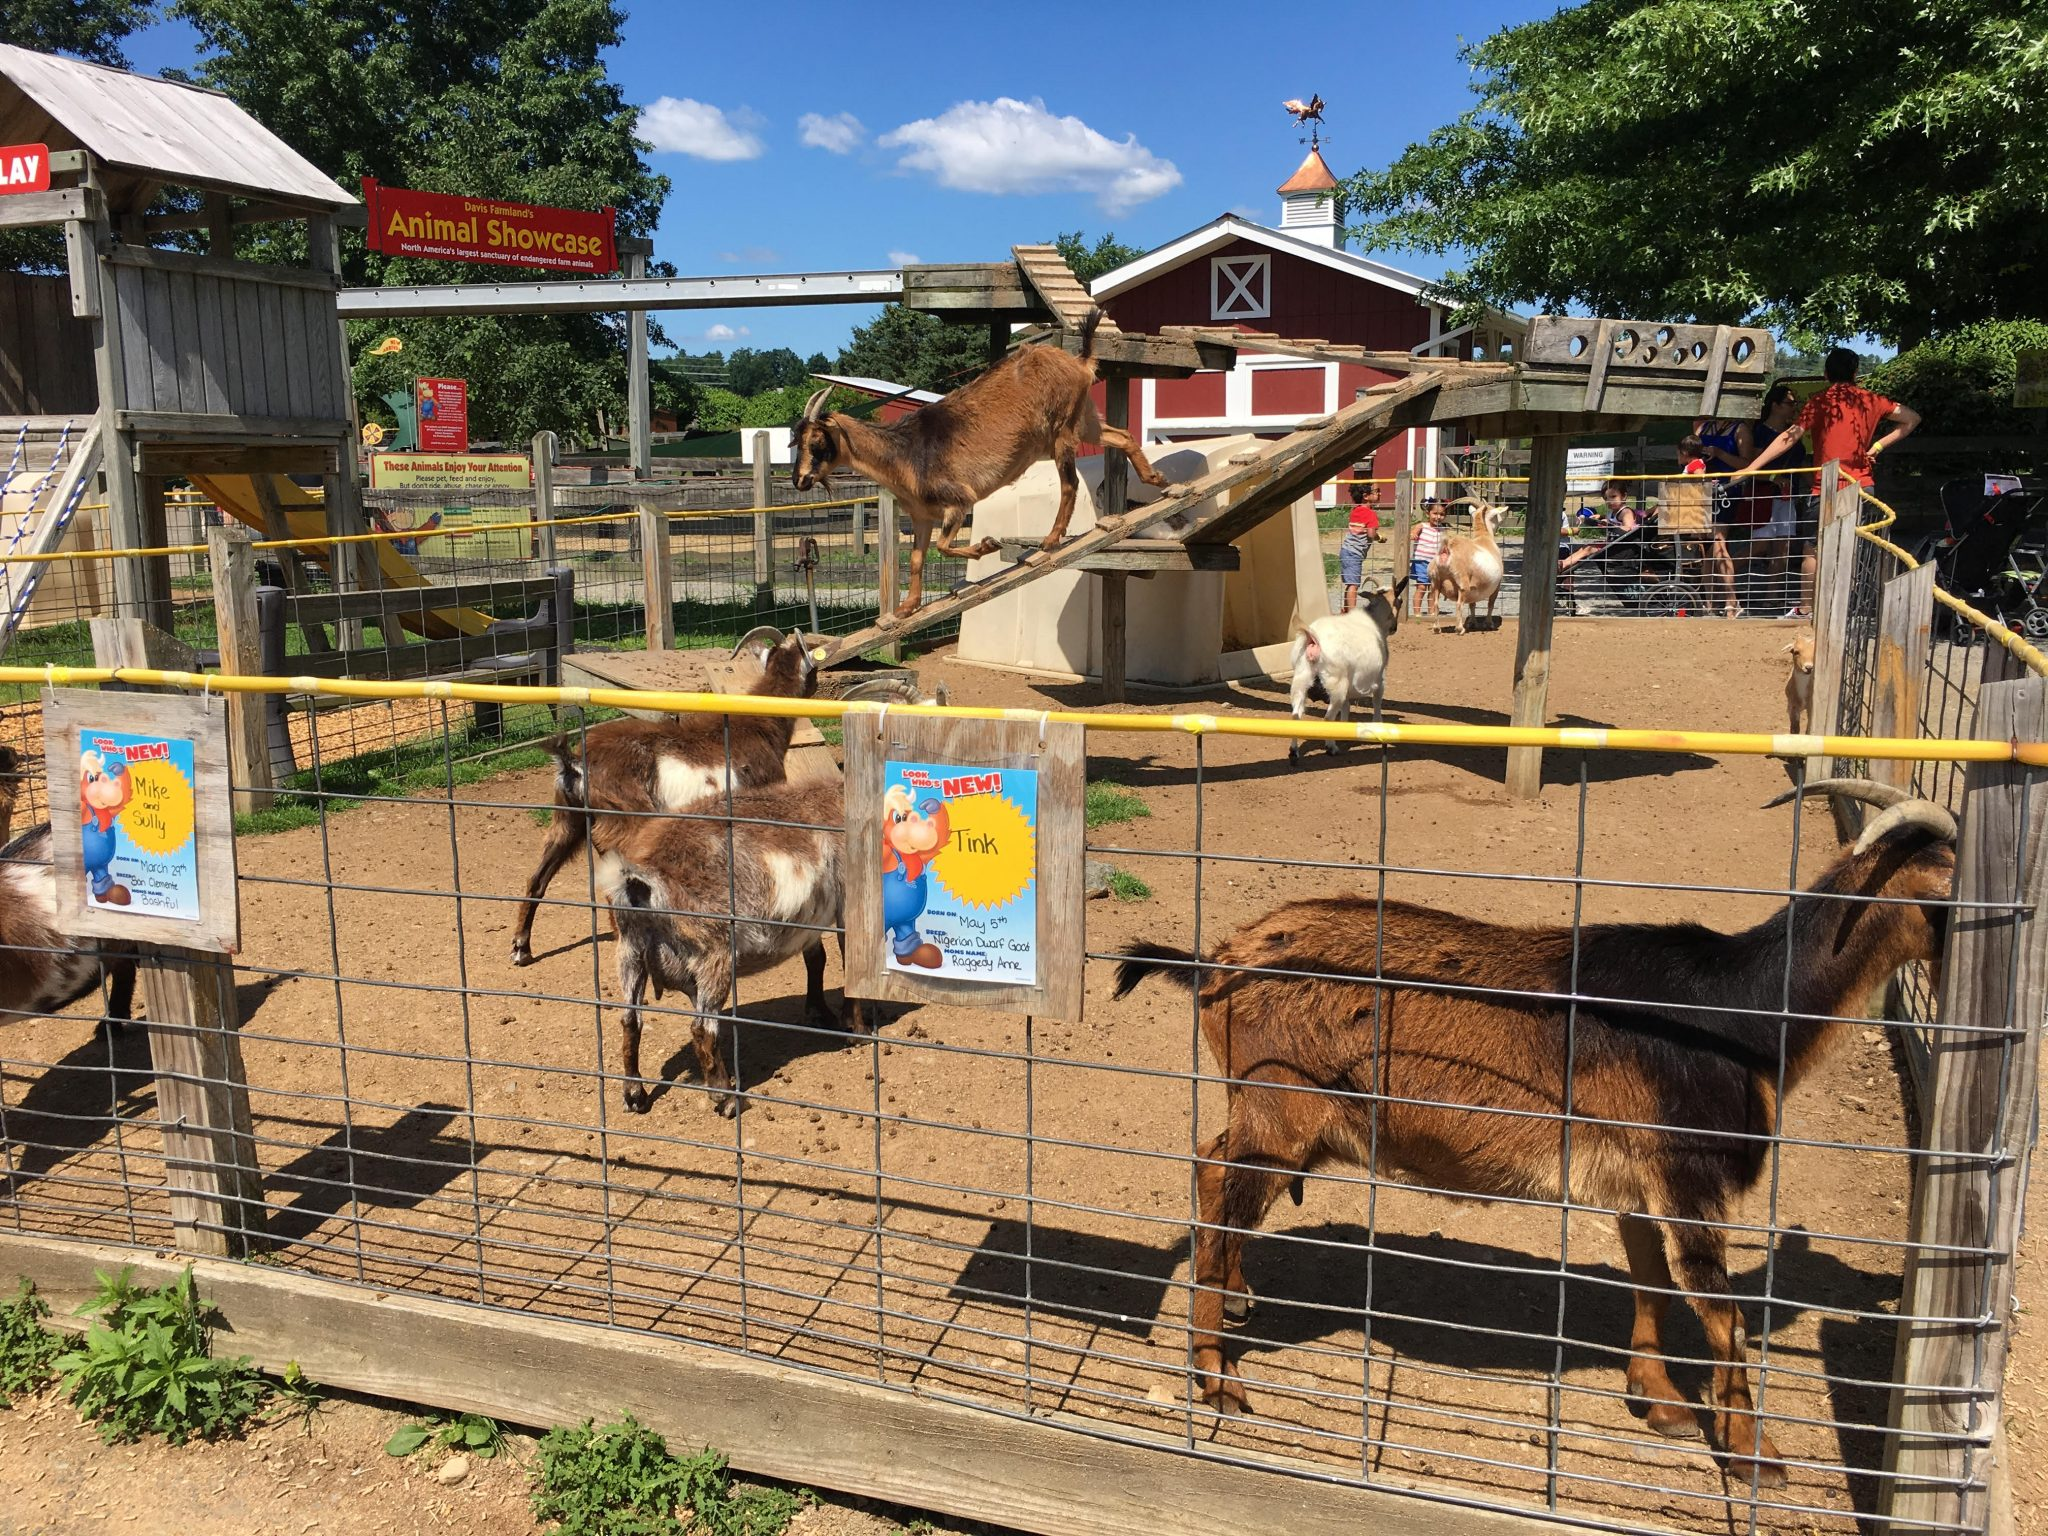 For a fun summer outing with the family, visit Davis Farmland in Sterling, MA